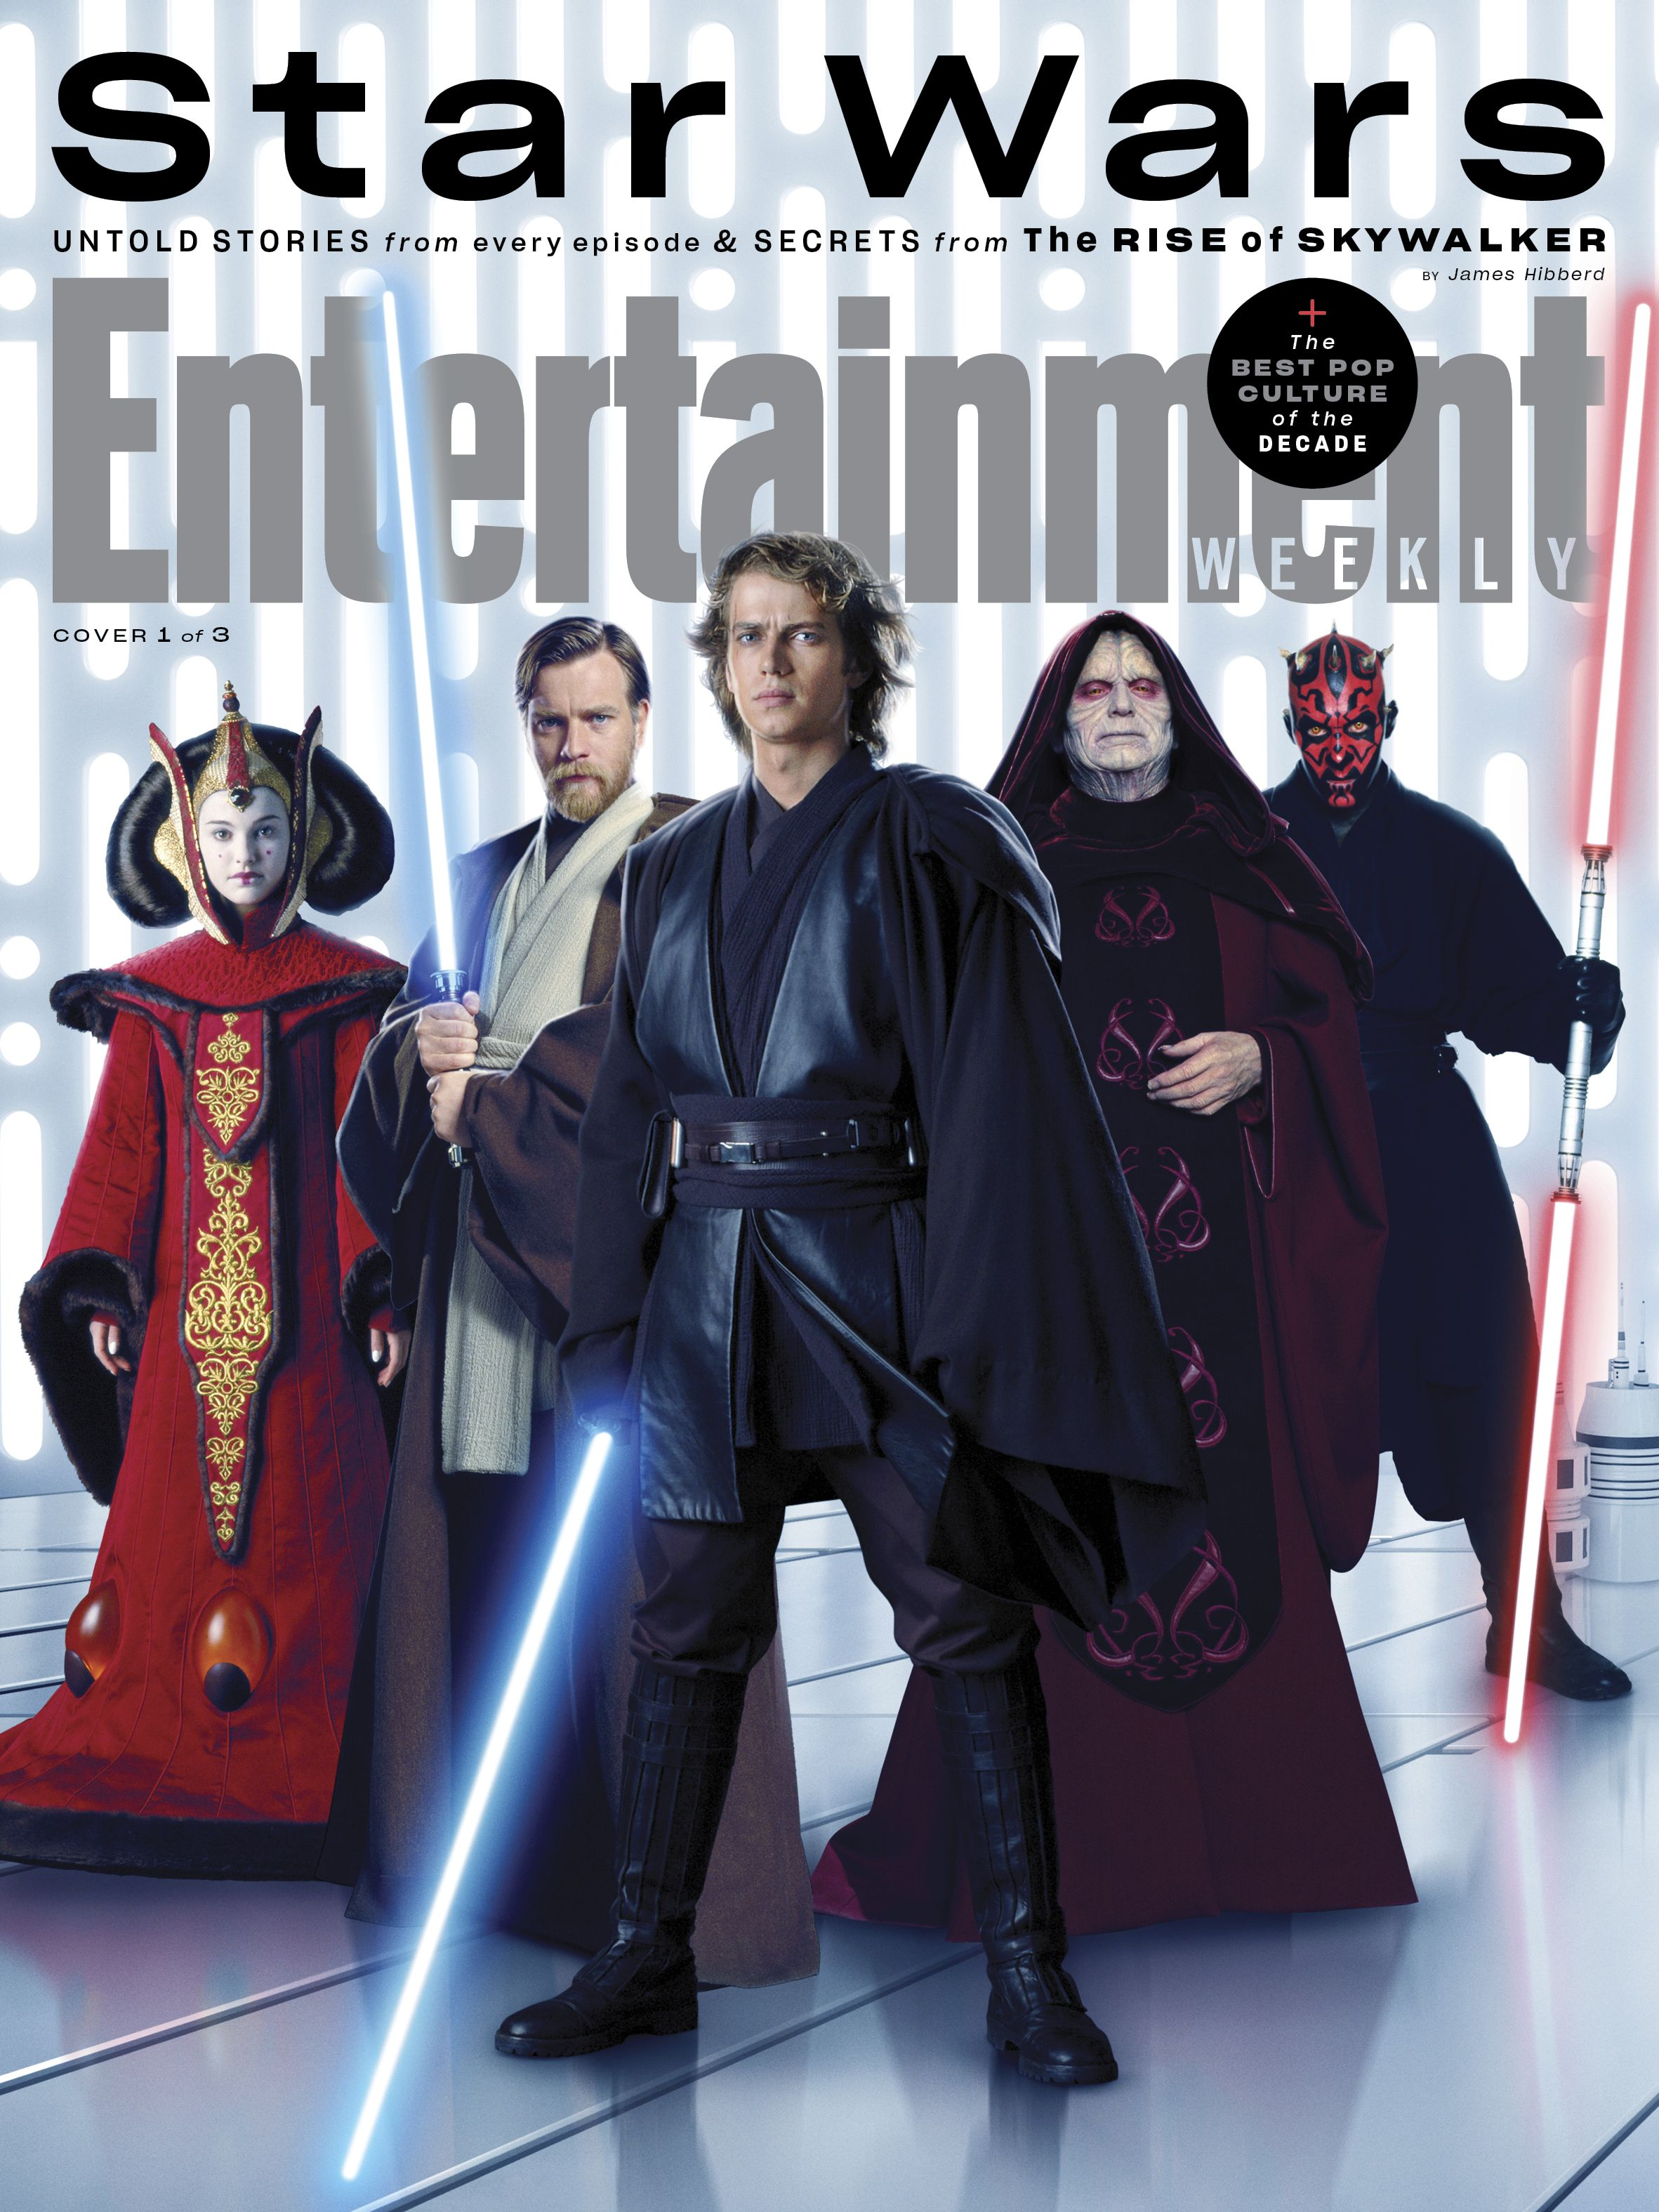 Inside Star Wars The Rise Of Skywalker The Stakes Are All Or Nothing With This Film Star Wars Star Wars Trilogy Star Wars Images